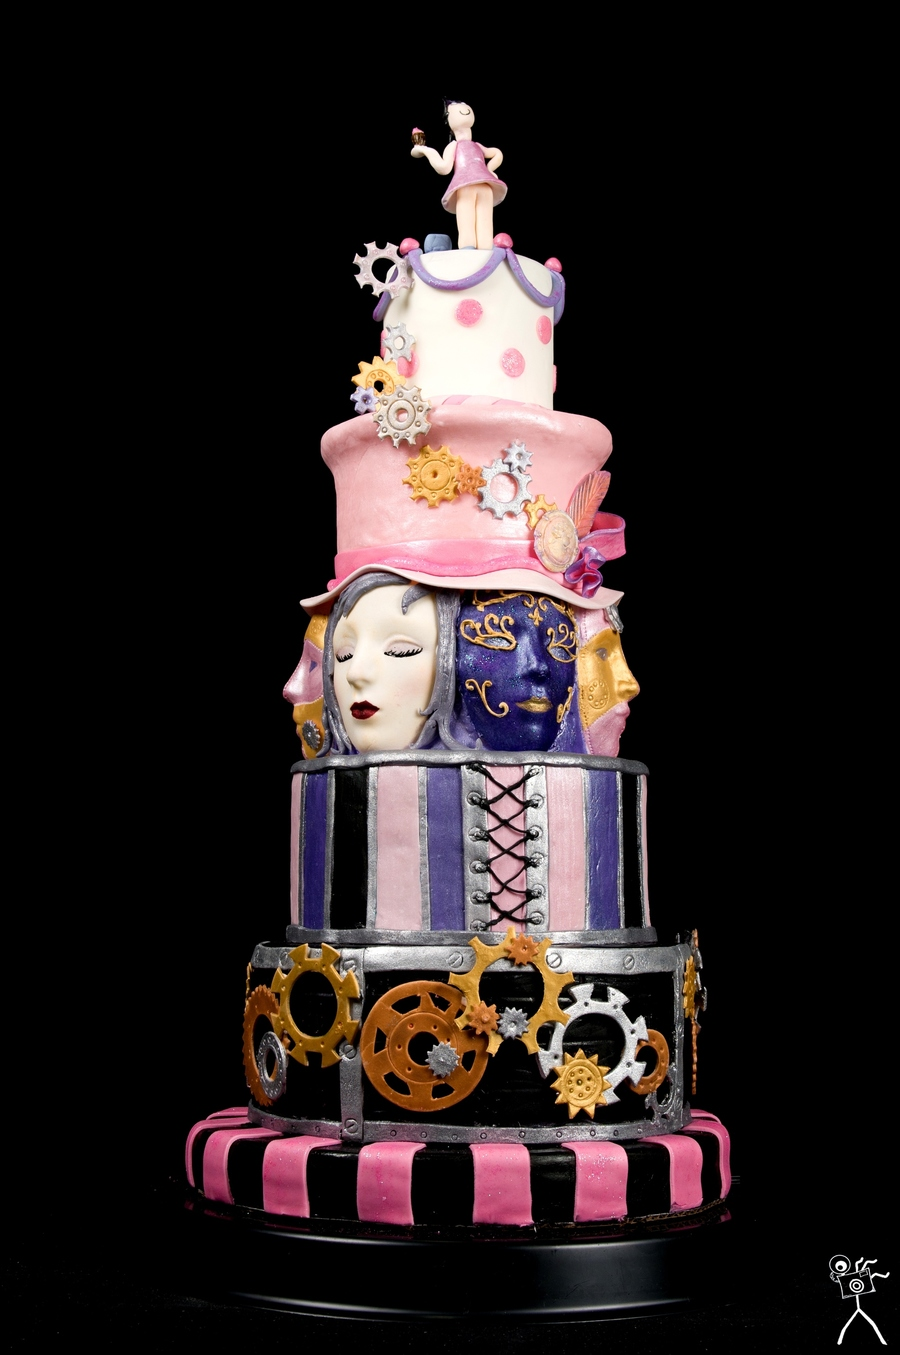 Cake Decorating Career How To Become A Cake Decorator From